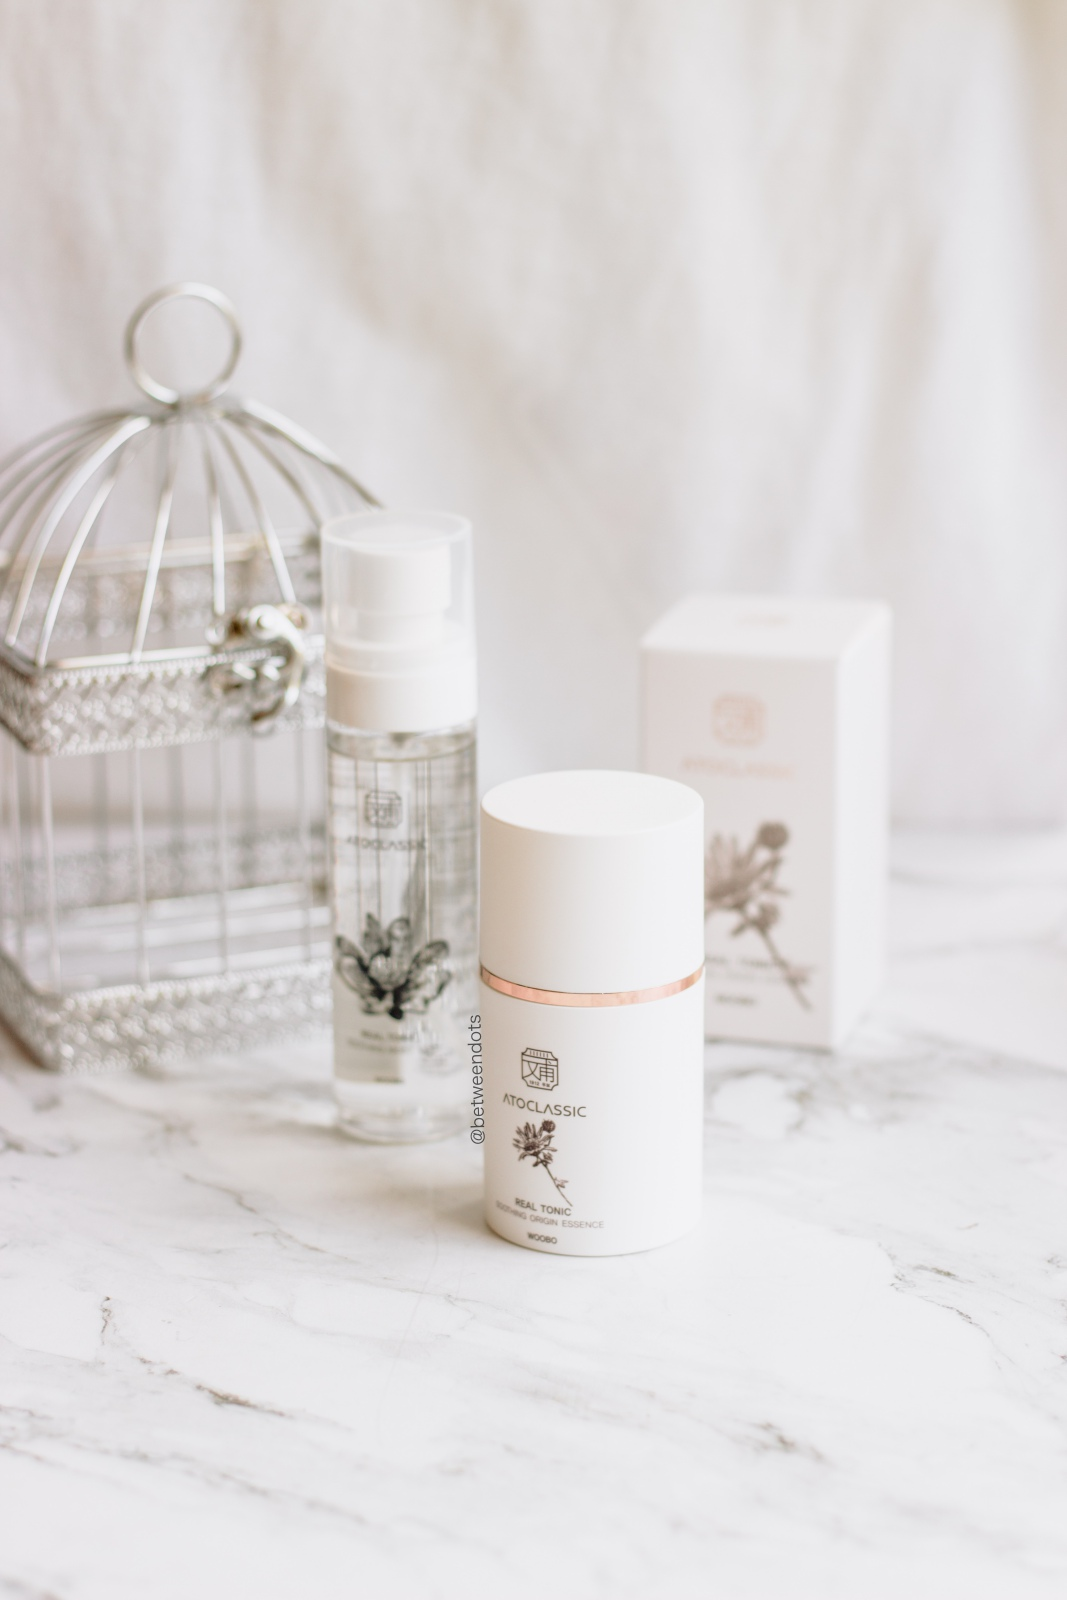 Hanbang skincare for sensitive skin with Atoclassic and